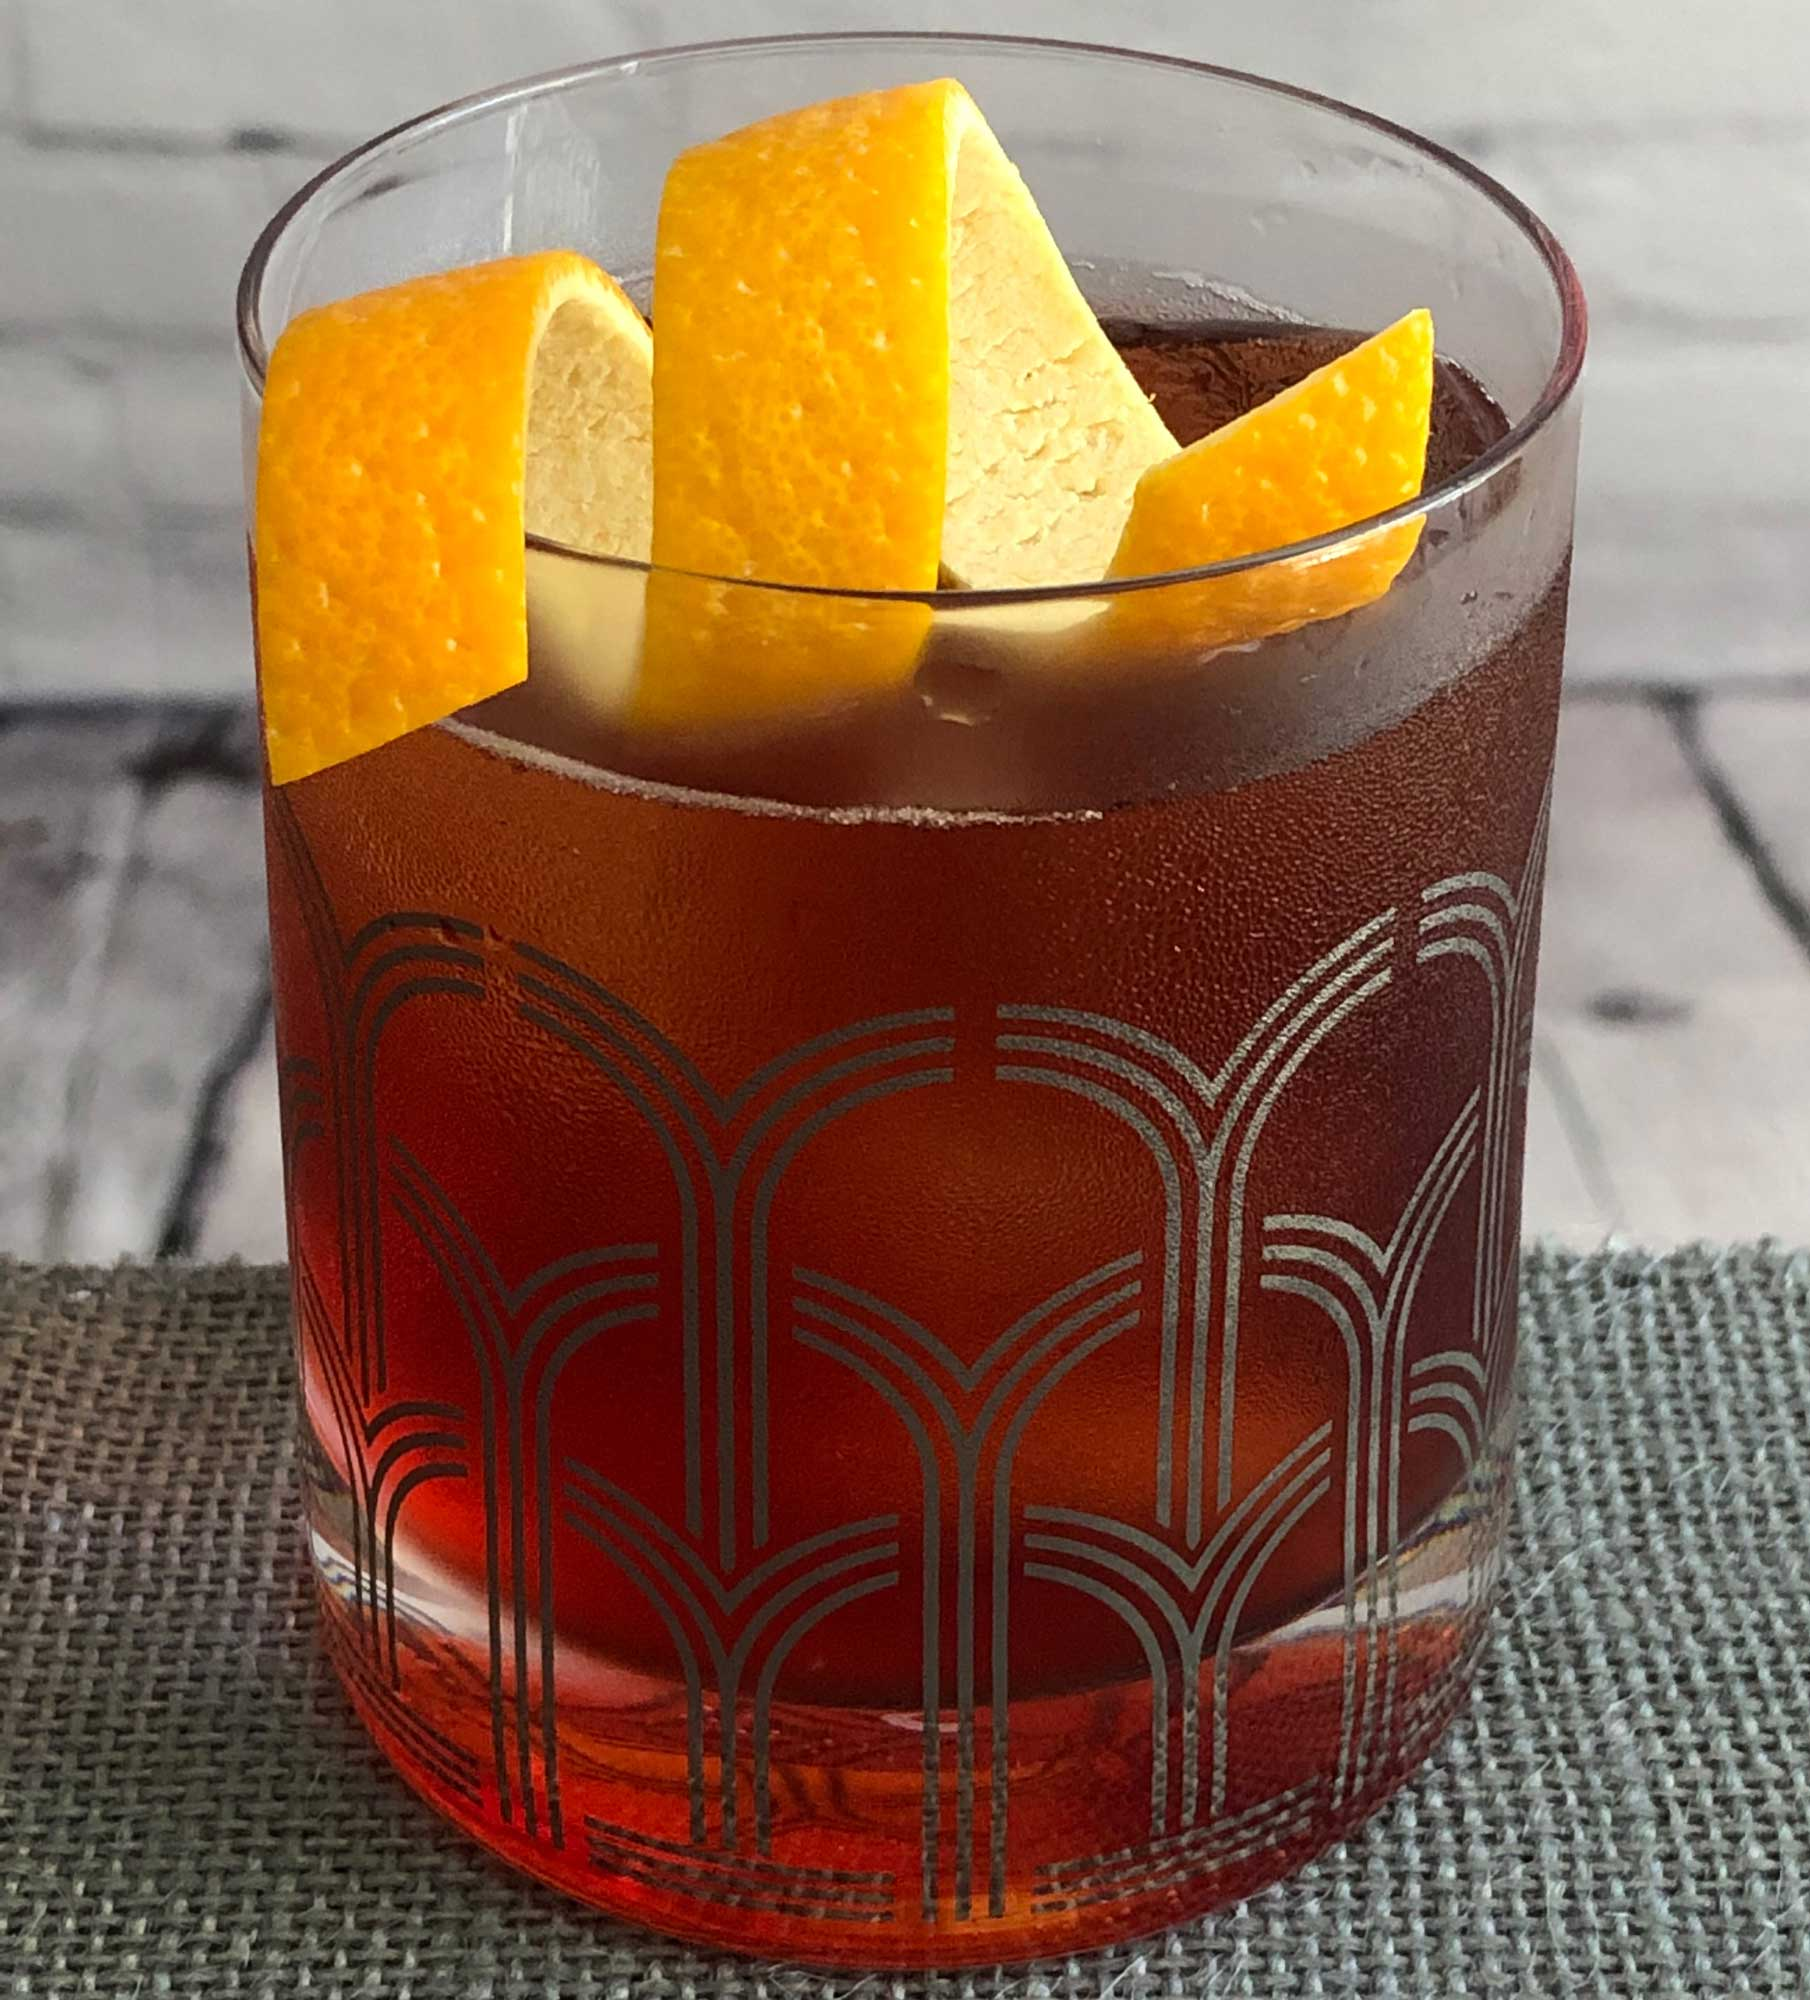 An example of the Chin-Chin, the mixed drink (cocktail) featuring Aperitivo Cappelletti, tonic water, and Cocchi Barolo Chinato; photo by Lee Edwards